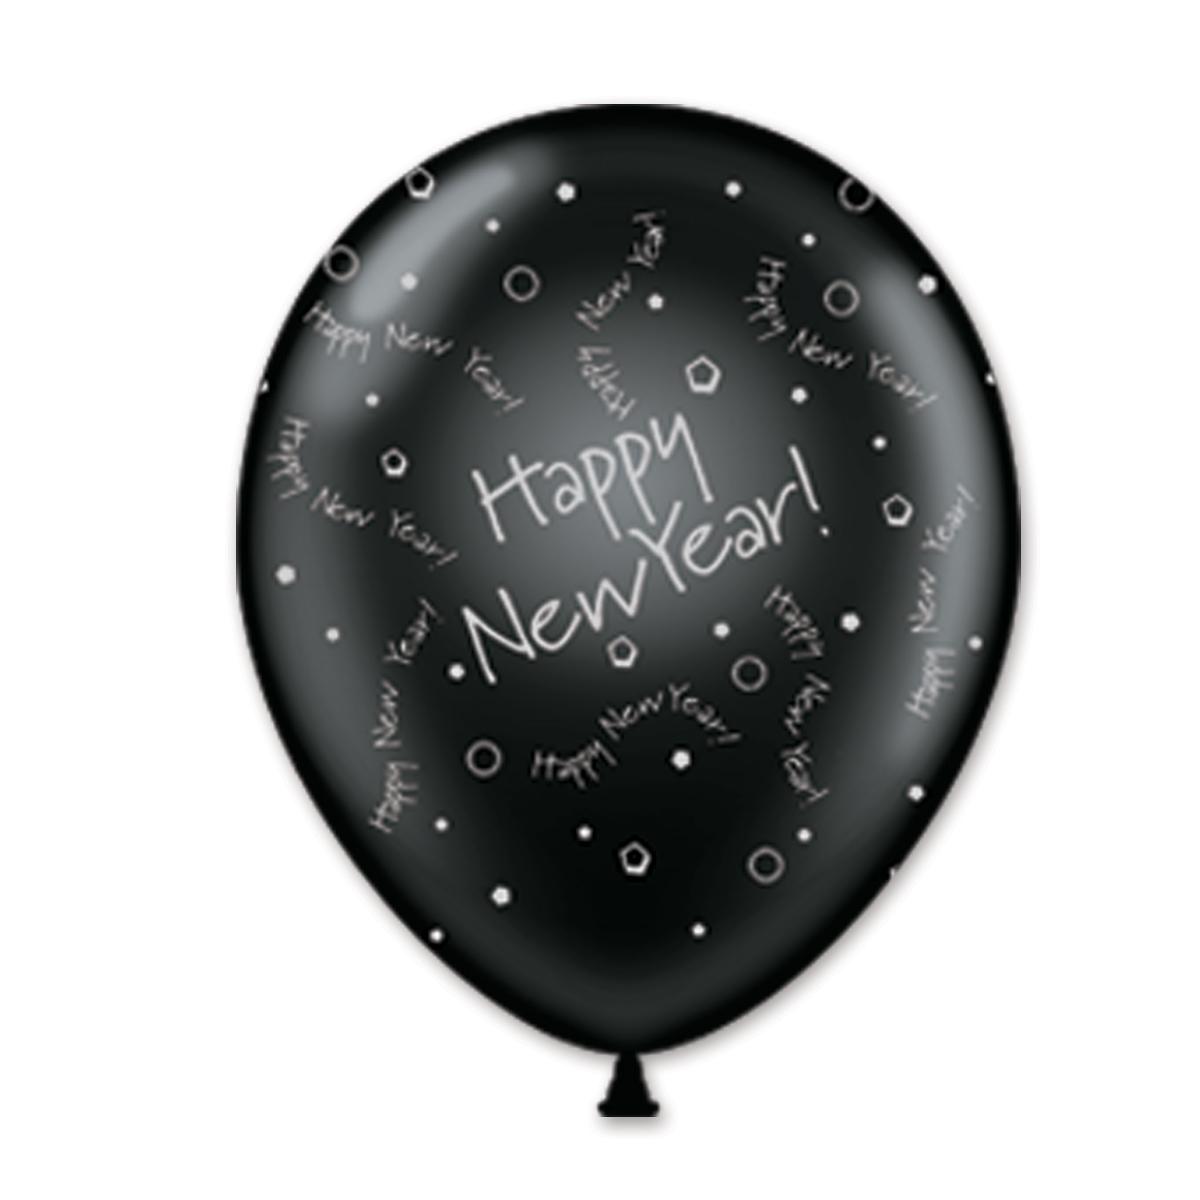 "11"" Black and Silver Happy New Year Balloons (Pack of 100) Balloons, Crystal Balloons, Imprinted Balloons, Inexpensive Decorations, Centerpiece, 11"" Balloons"